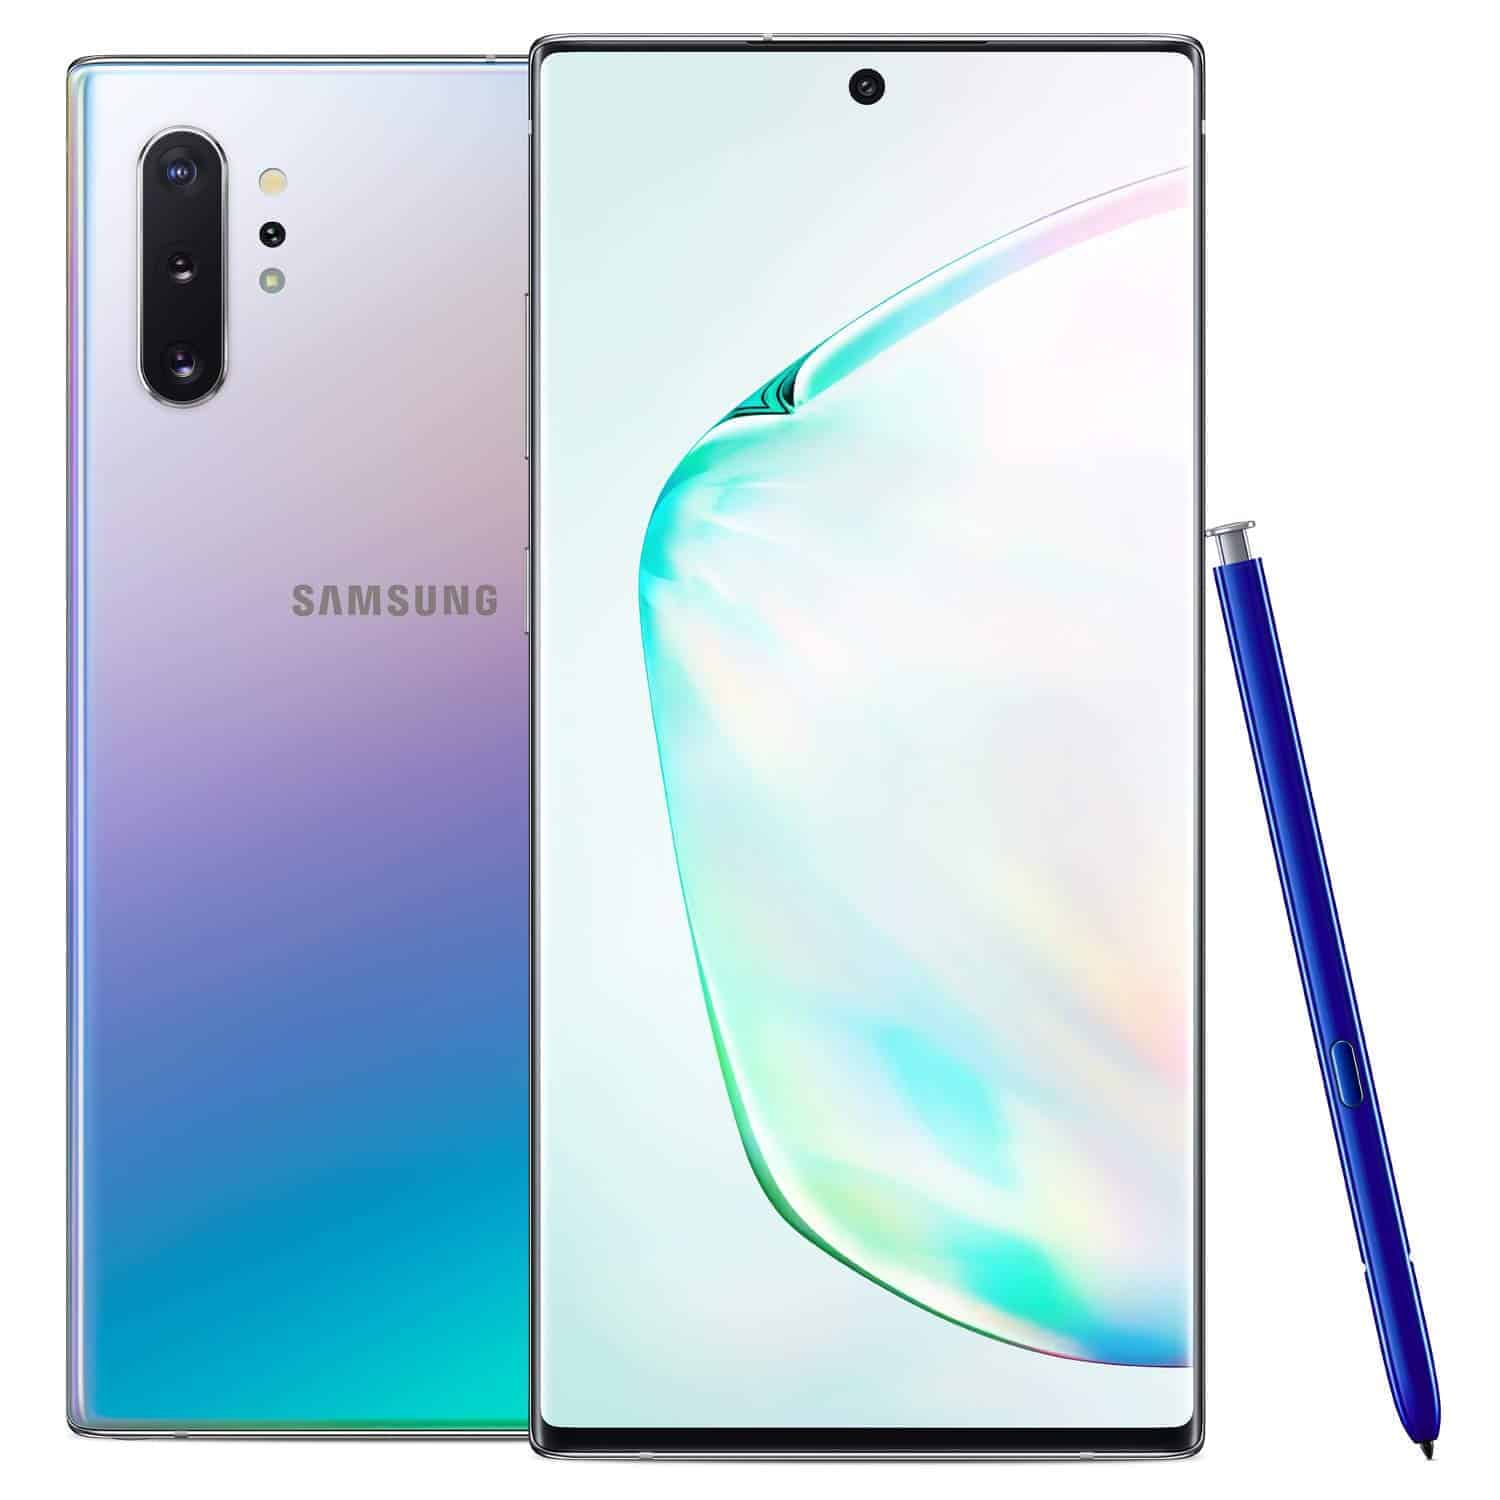 Save on Samsung Galaxy S10/Note 10 with Free Galaxy Buds - Amazon